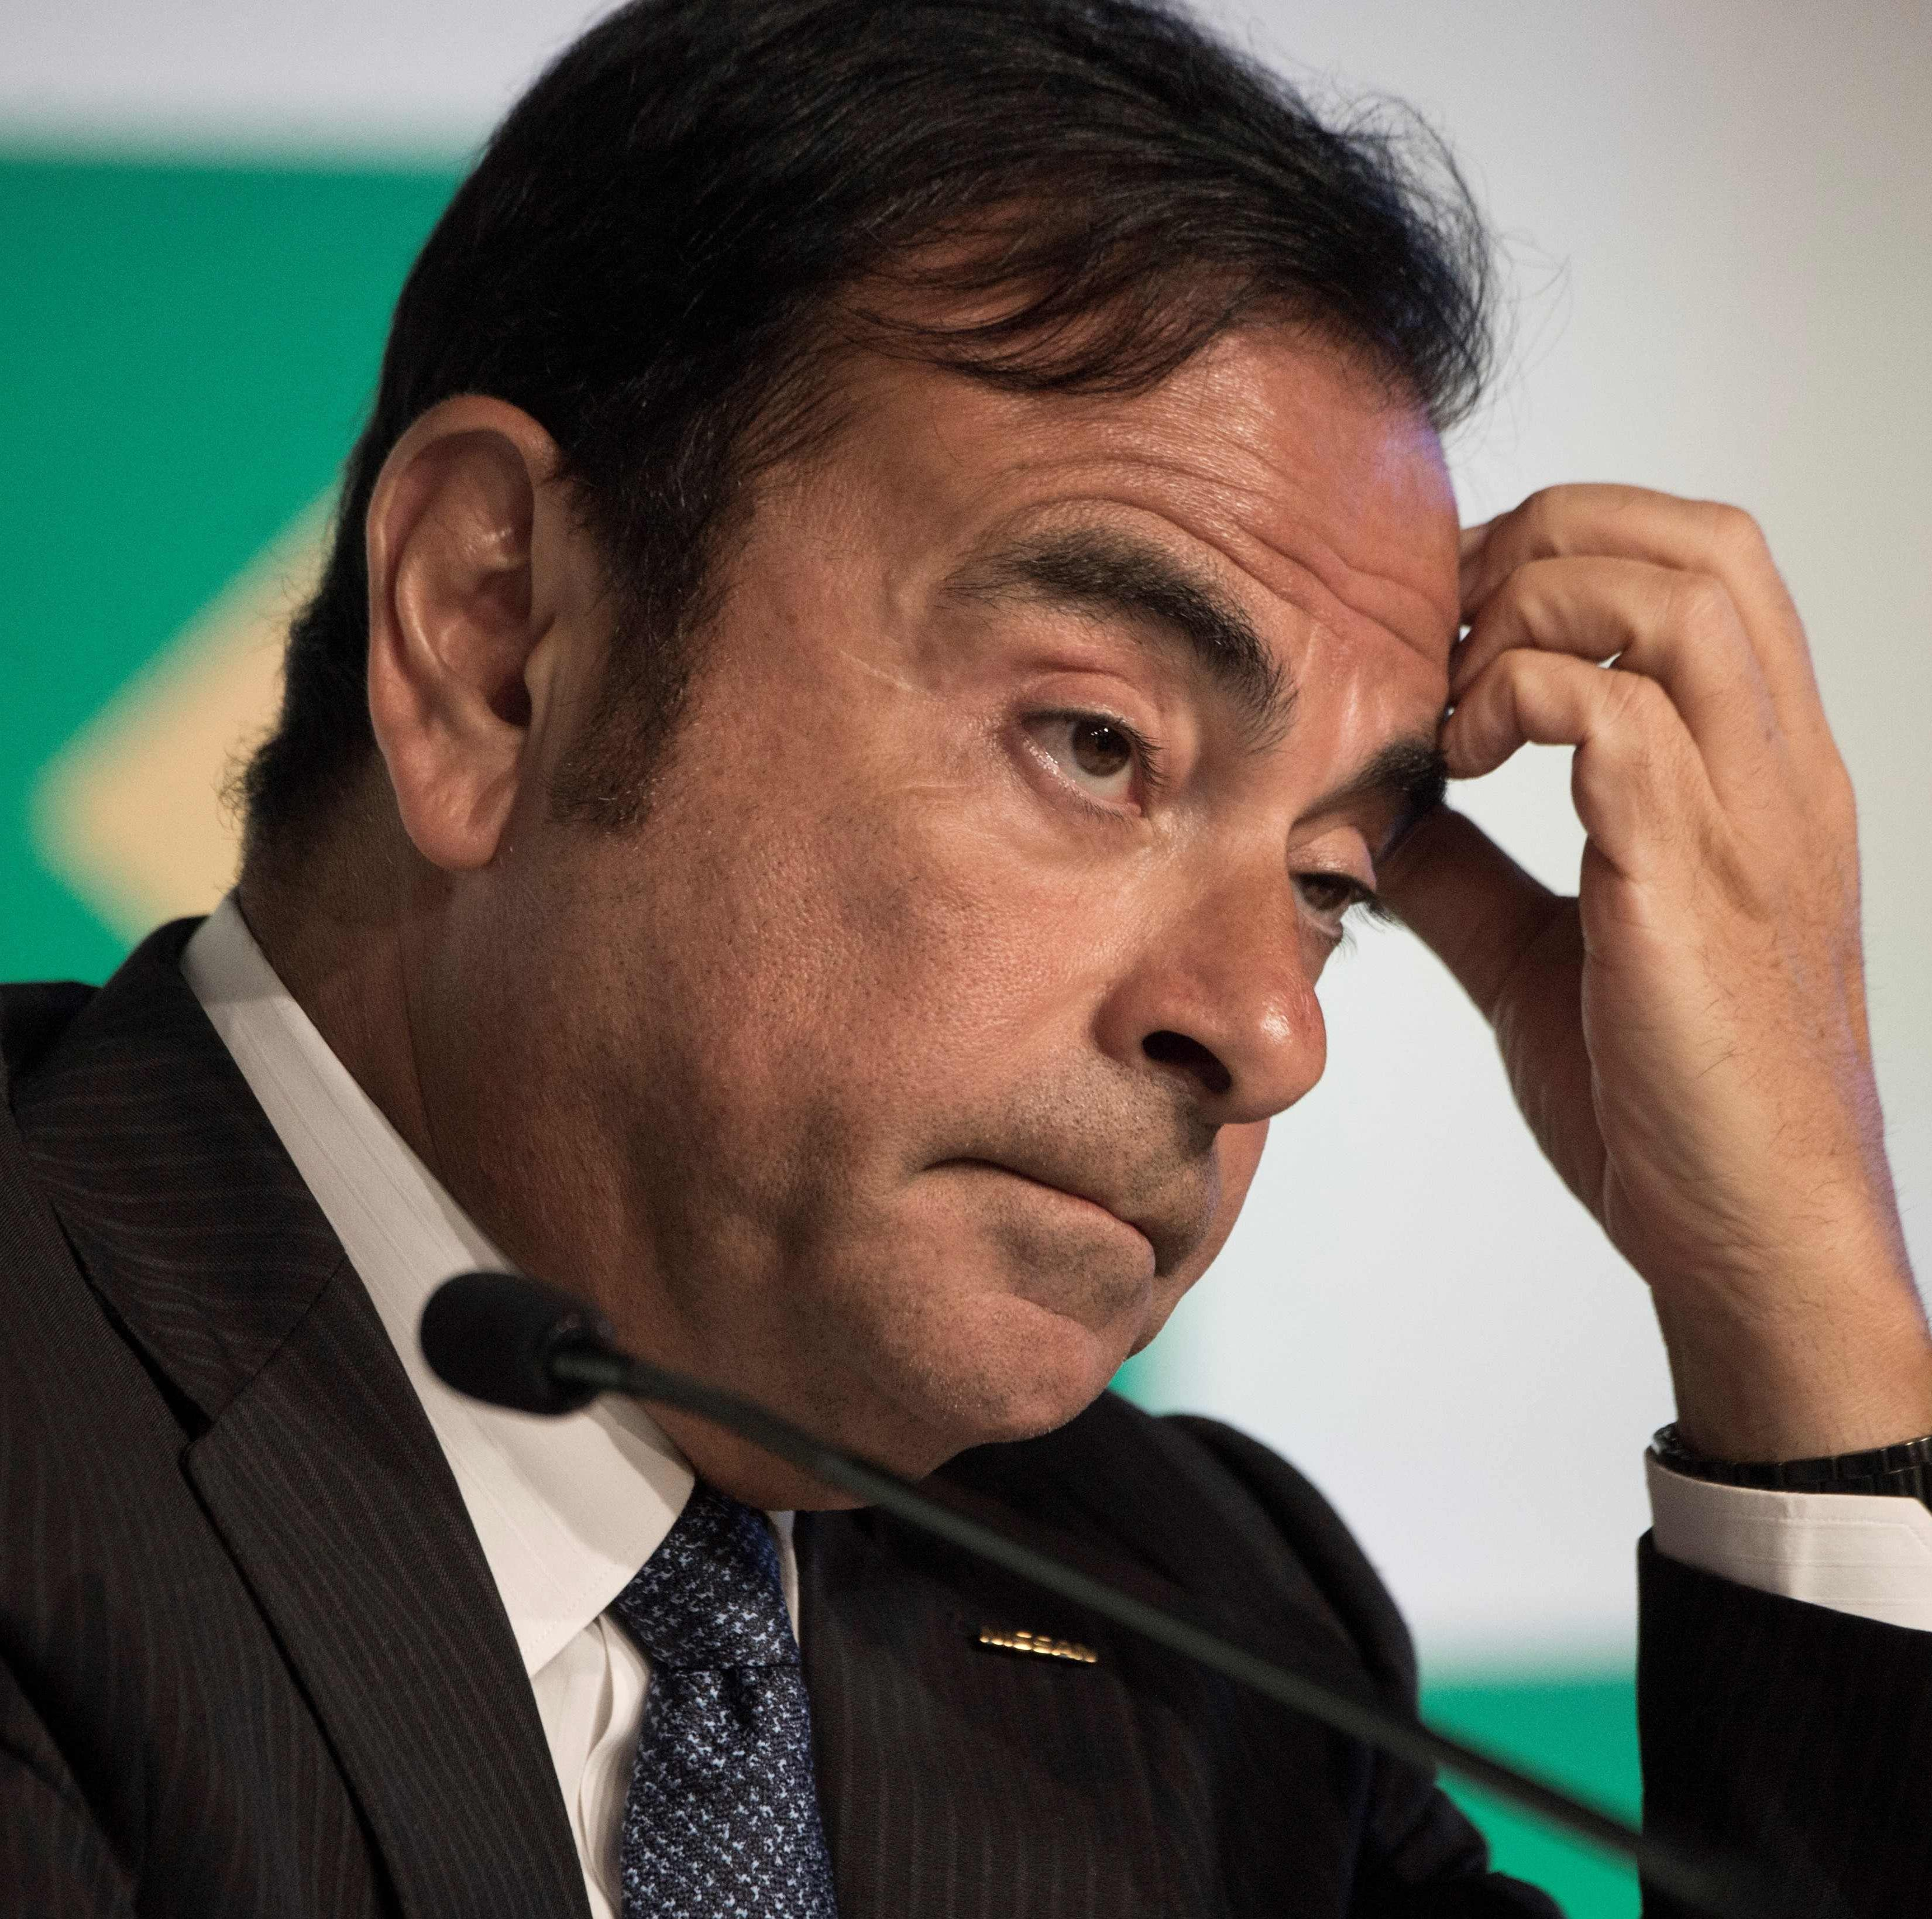 Nissan Chairman Carlos Ghosn, gesturing during a press conference at the company's Brazilian headquarters in downtown Rio de Janeiro on Jan. 4, 2016. Ghosn was arrested in Tokyo on Nov. 19, 2018. for financial misconduct, public broadcaster NHK and other Japanese media outlets reported.